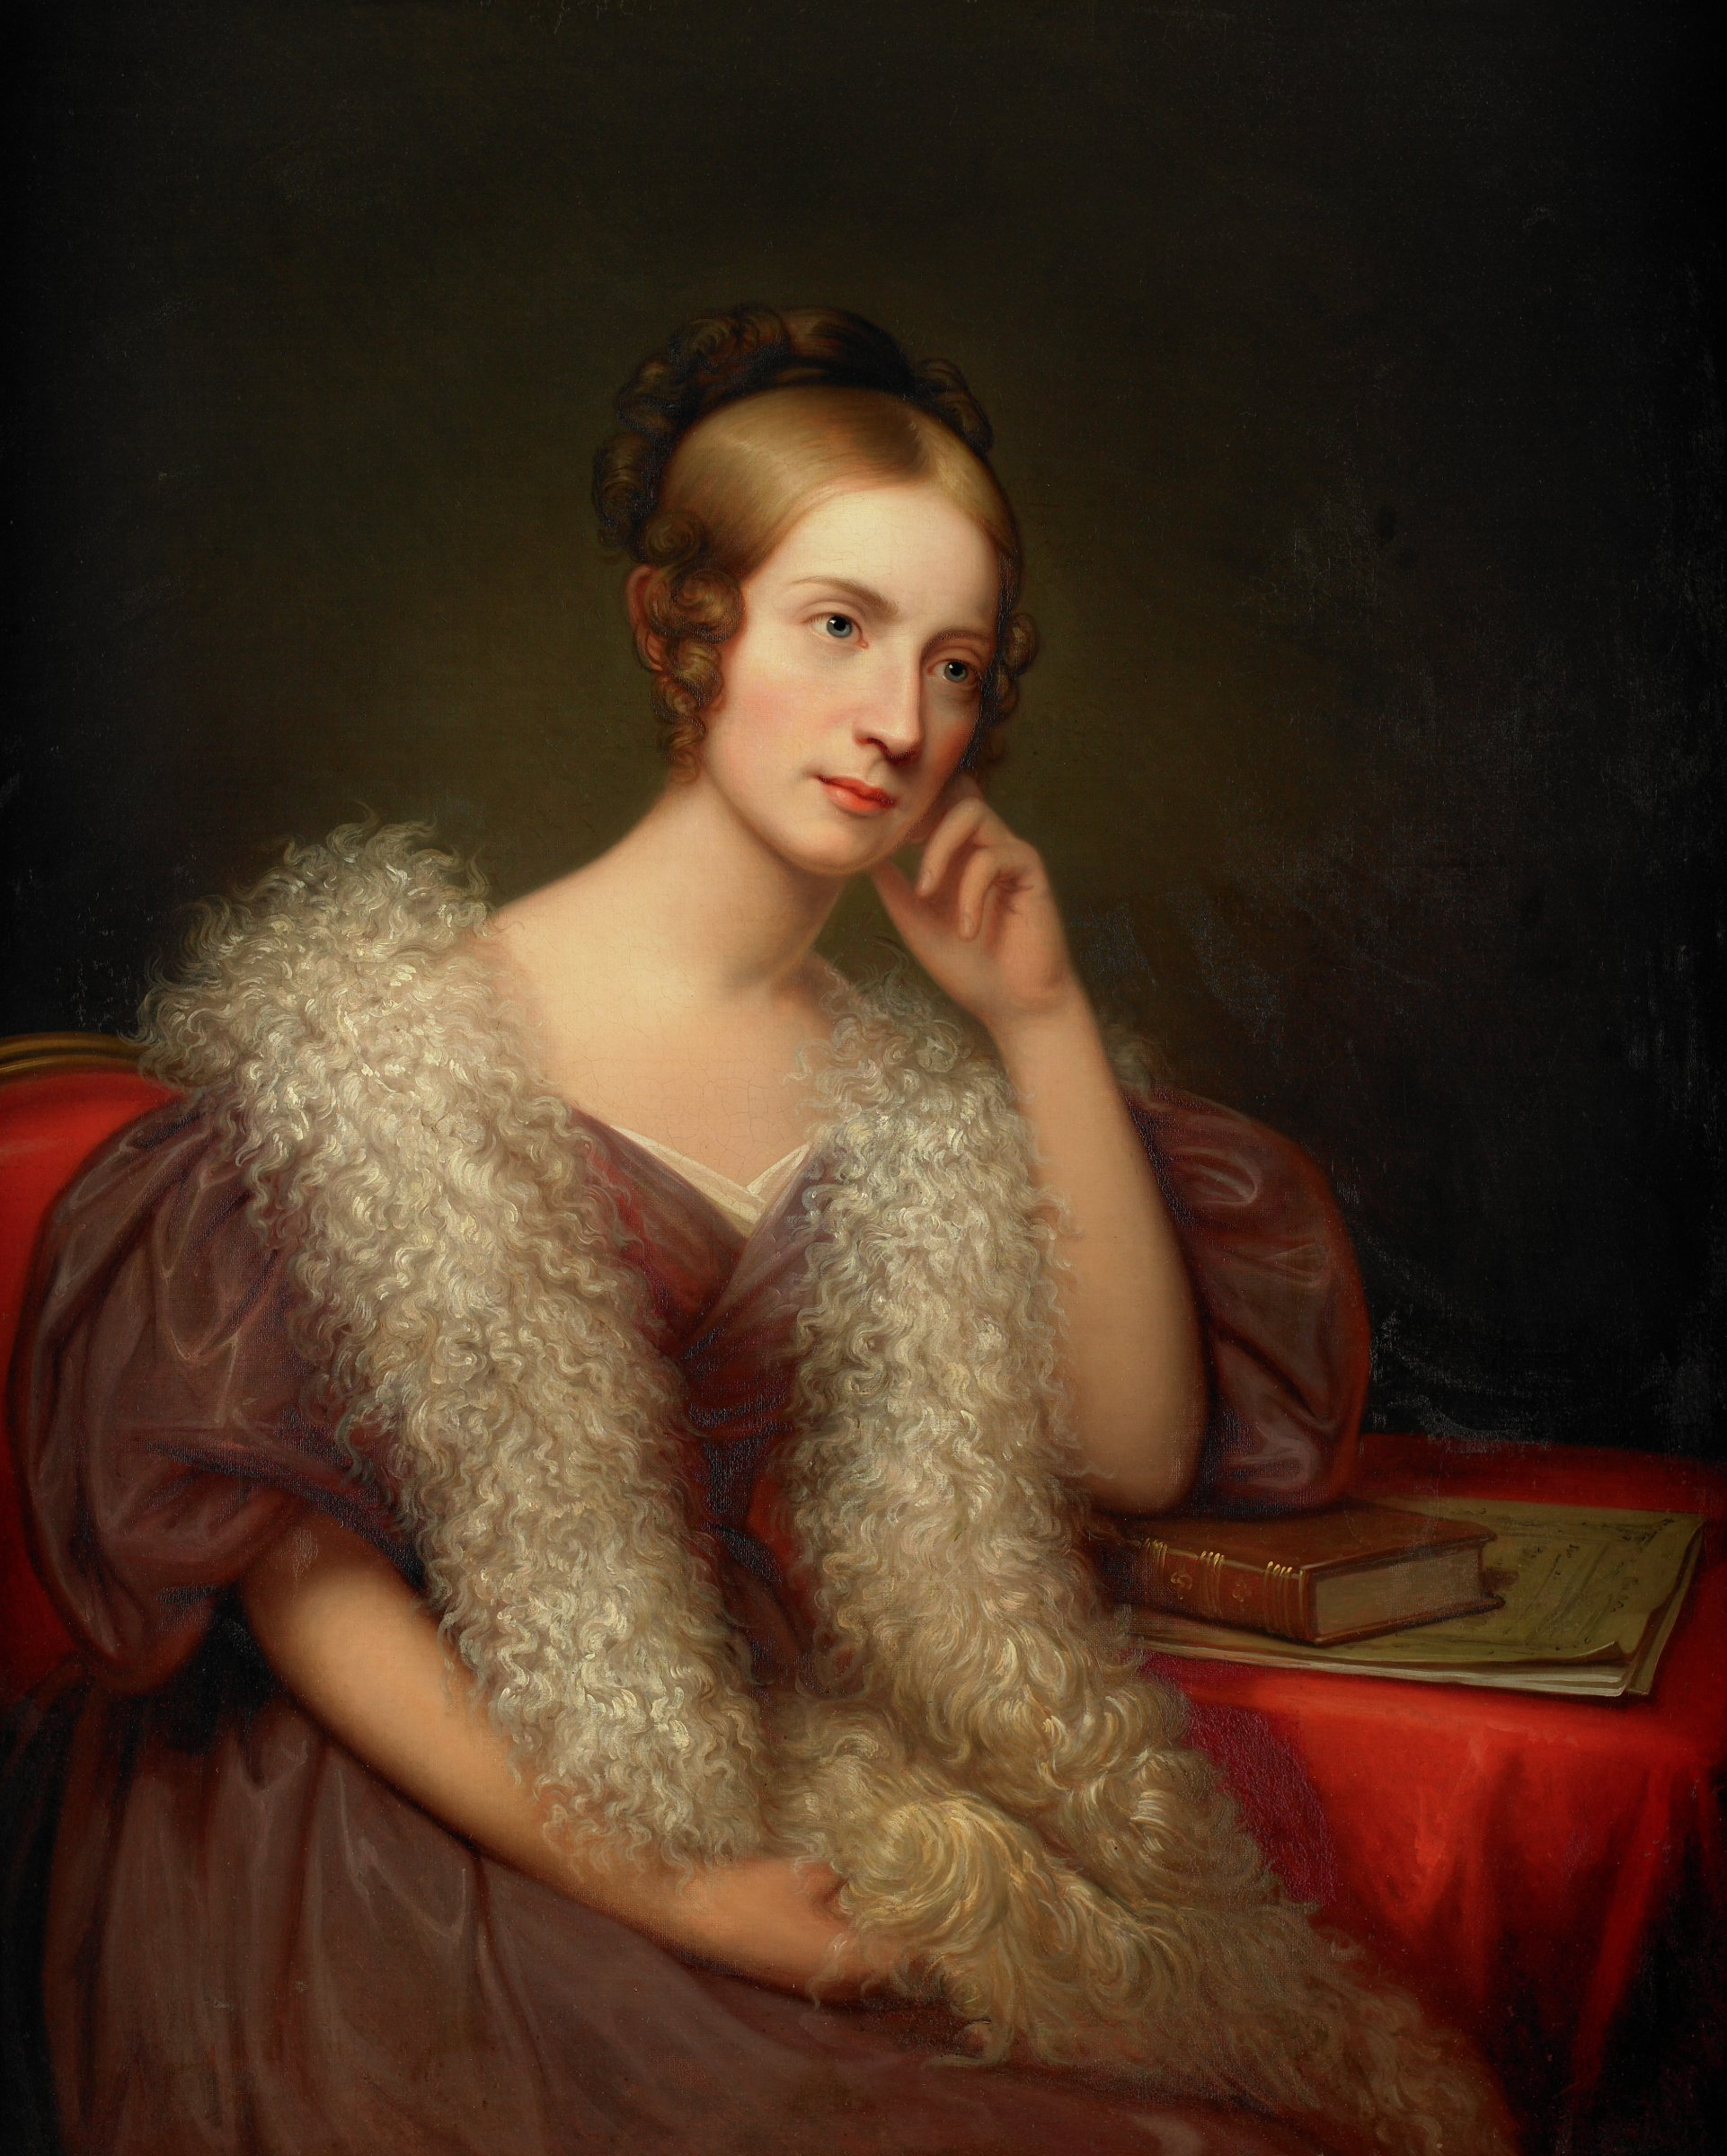 Swan-necked woman in a purple dress with a fur collar sitting pensively; her left arm rests on a book, atop of table decked with a red cloth